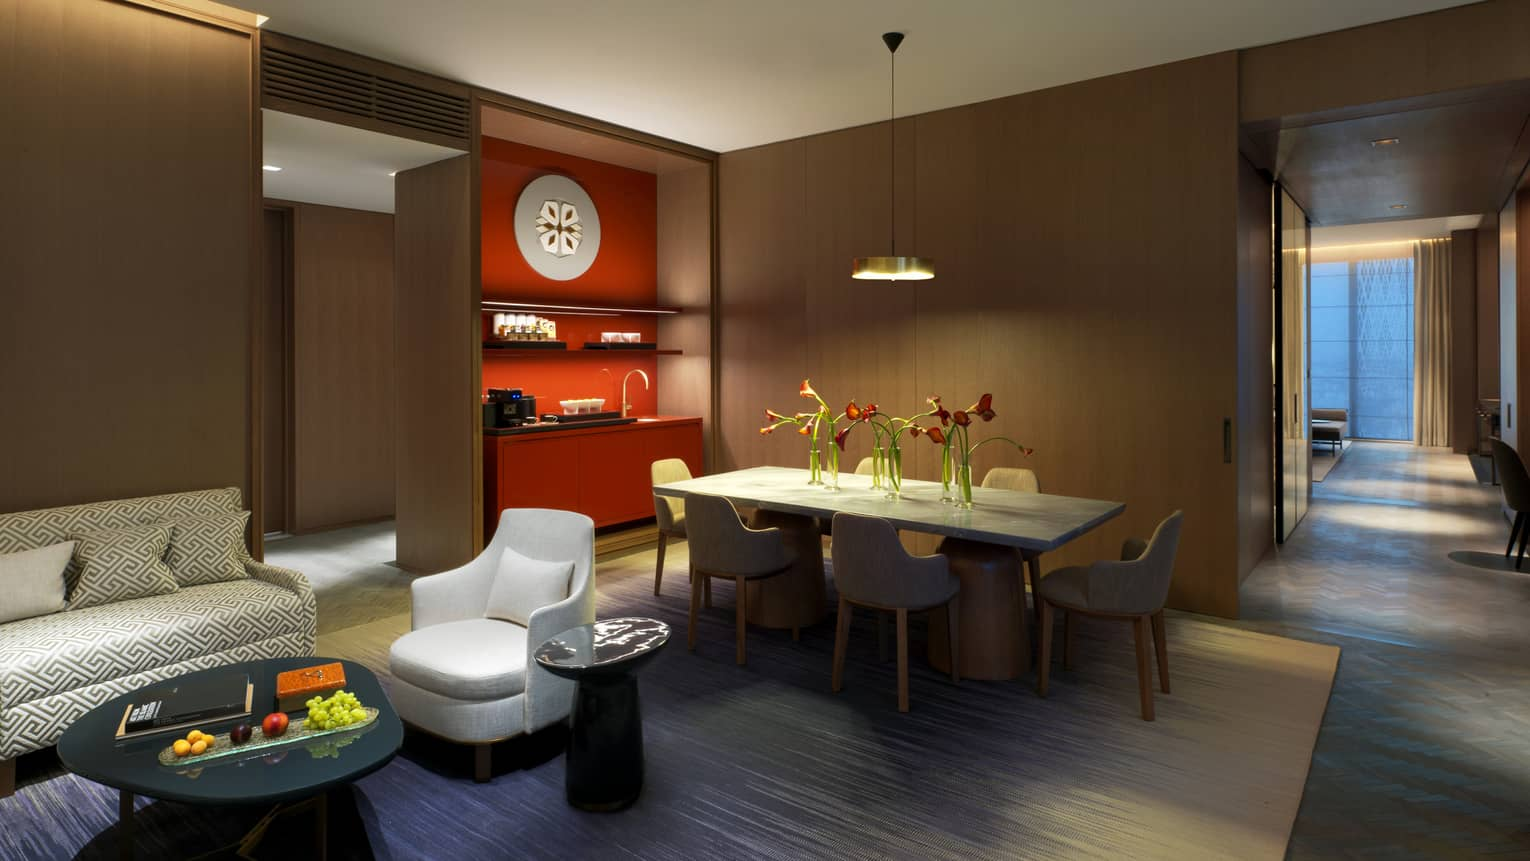 Ambassador Suite private dining table in front of wood panel bar, red wet bar, modern sofa, chair